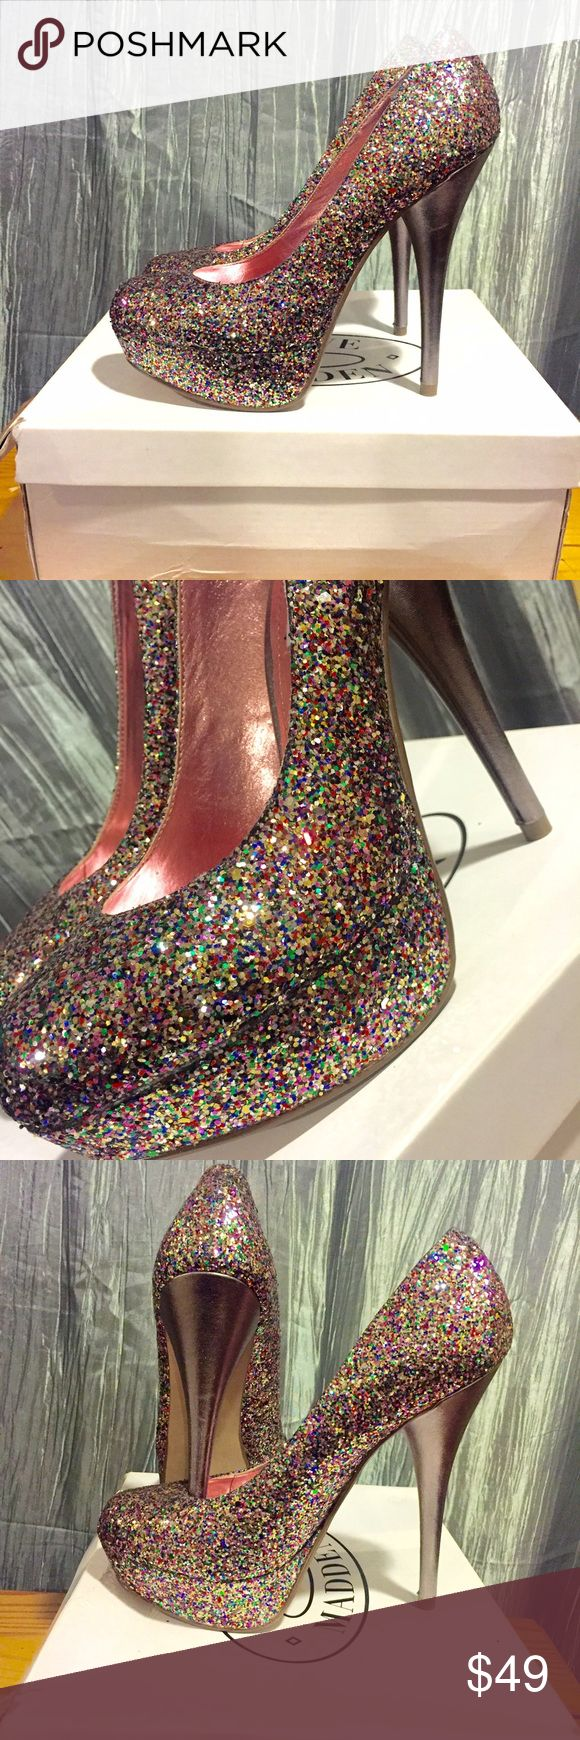 NEW Steve Madden high heels Brand New in original box Steve Madden Blain Multi Colored high heels. Light up your night with these amazing unique shoes ! From a Pet Free 💛 and Smoke Free home 🚫 Steve Madden Shoes Heels